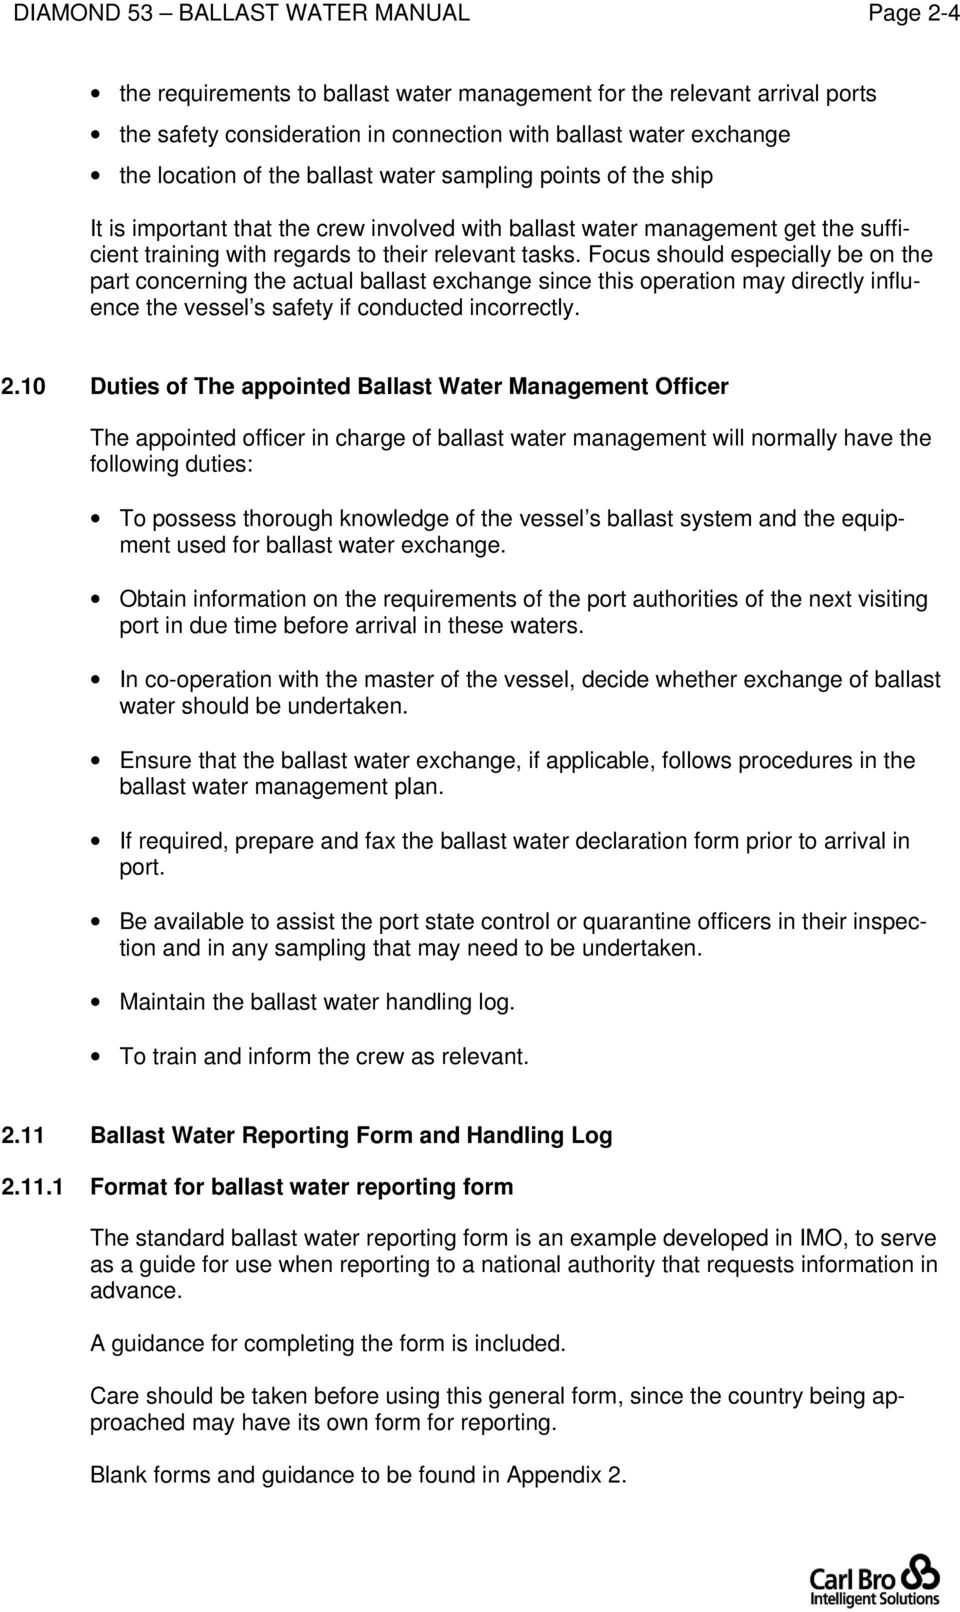 Ballast Water Management Manual Pdf T5 Wiring Q The Reef Tank Focus Should Especially Be On Part Concerning Actual Exchange Since This Operation May